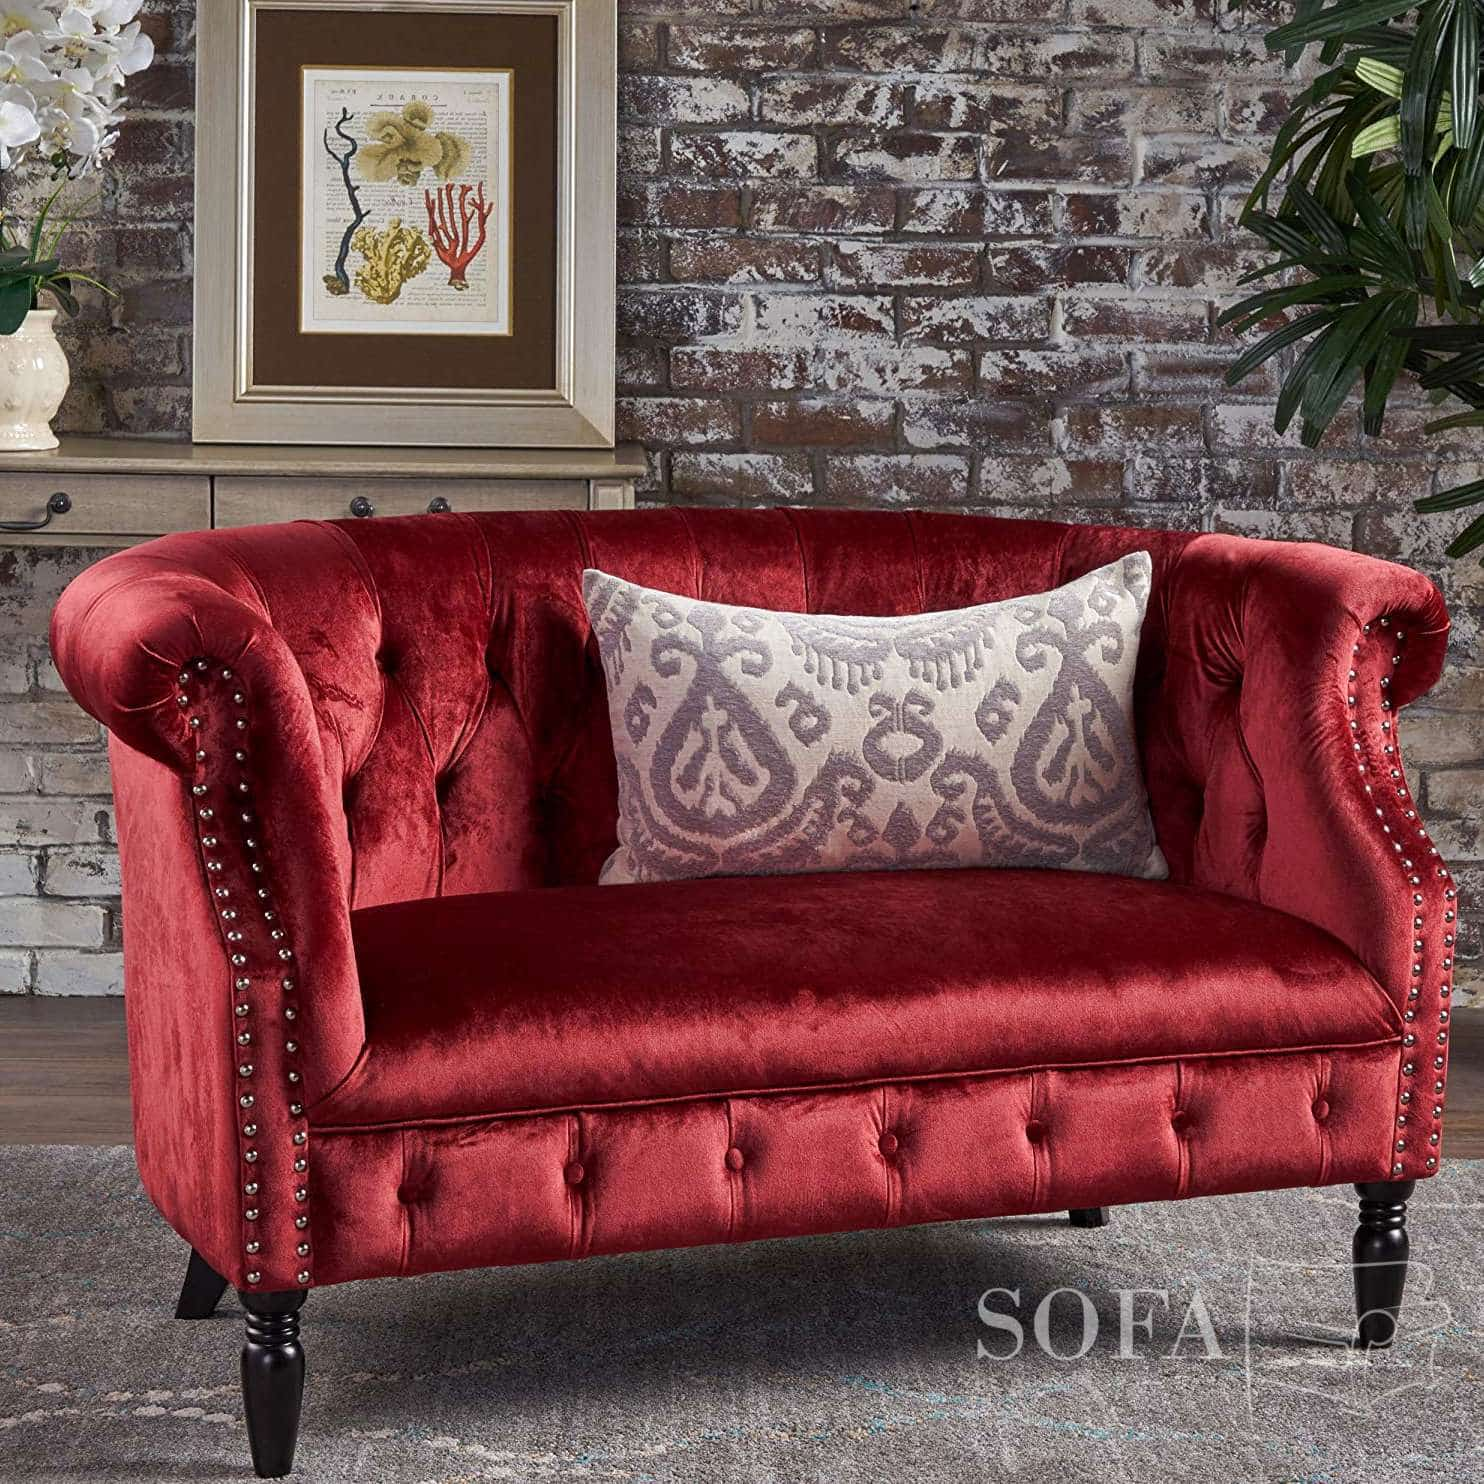 The Best Red Velvet Couches Of 2021   Sofa Spring